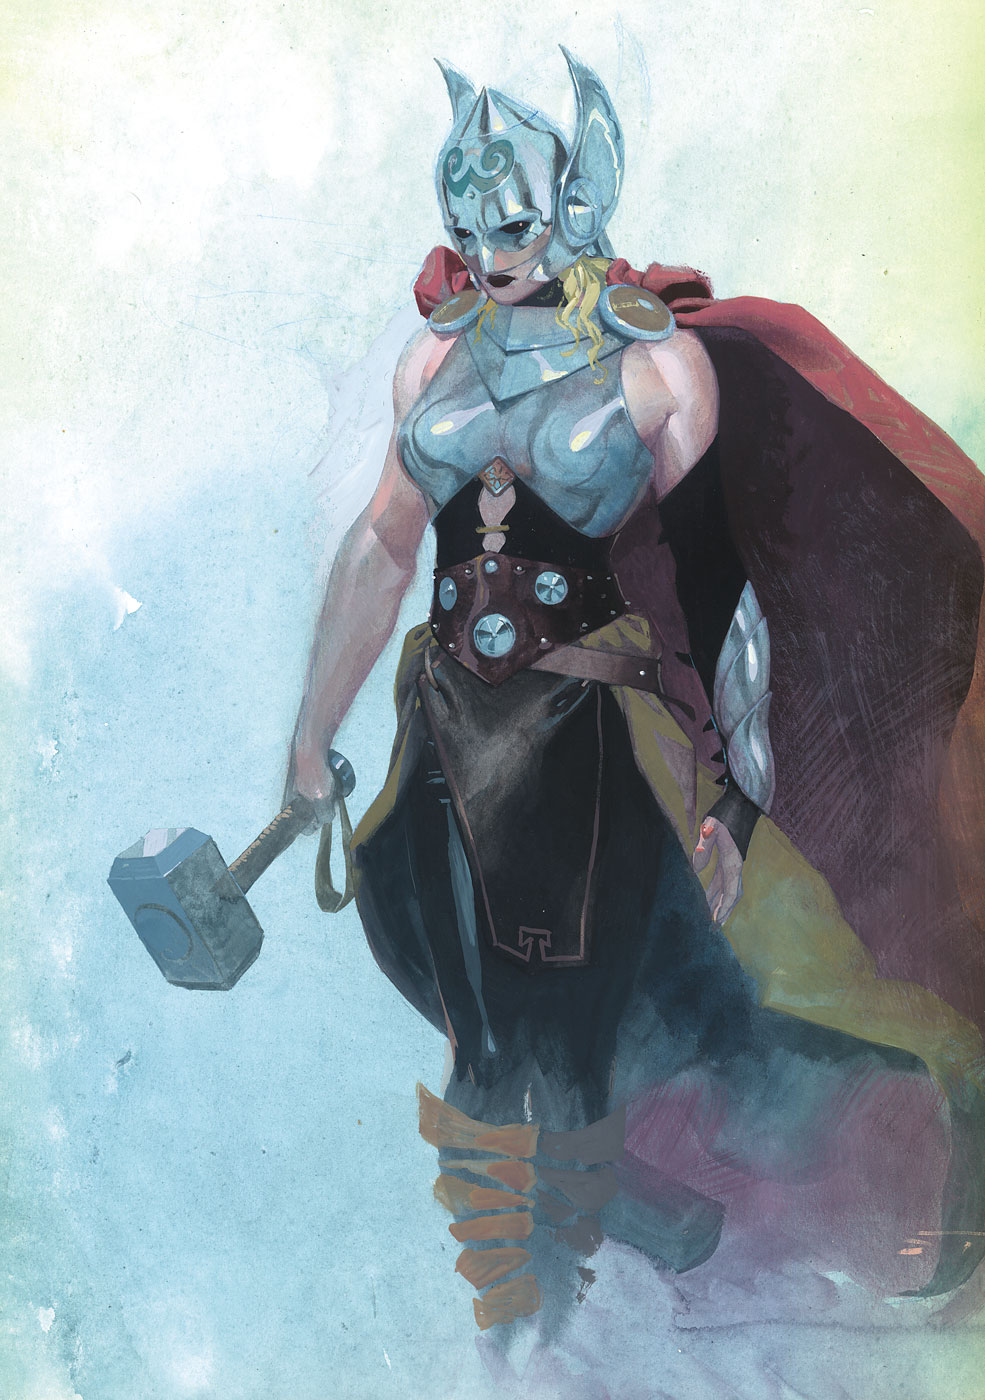 On October 1, for the first time ever, a woman shall be deemed worthy to wield the hammer Mjolnir and possess the powers of Thor.